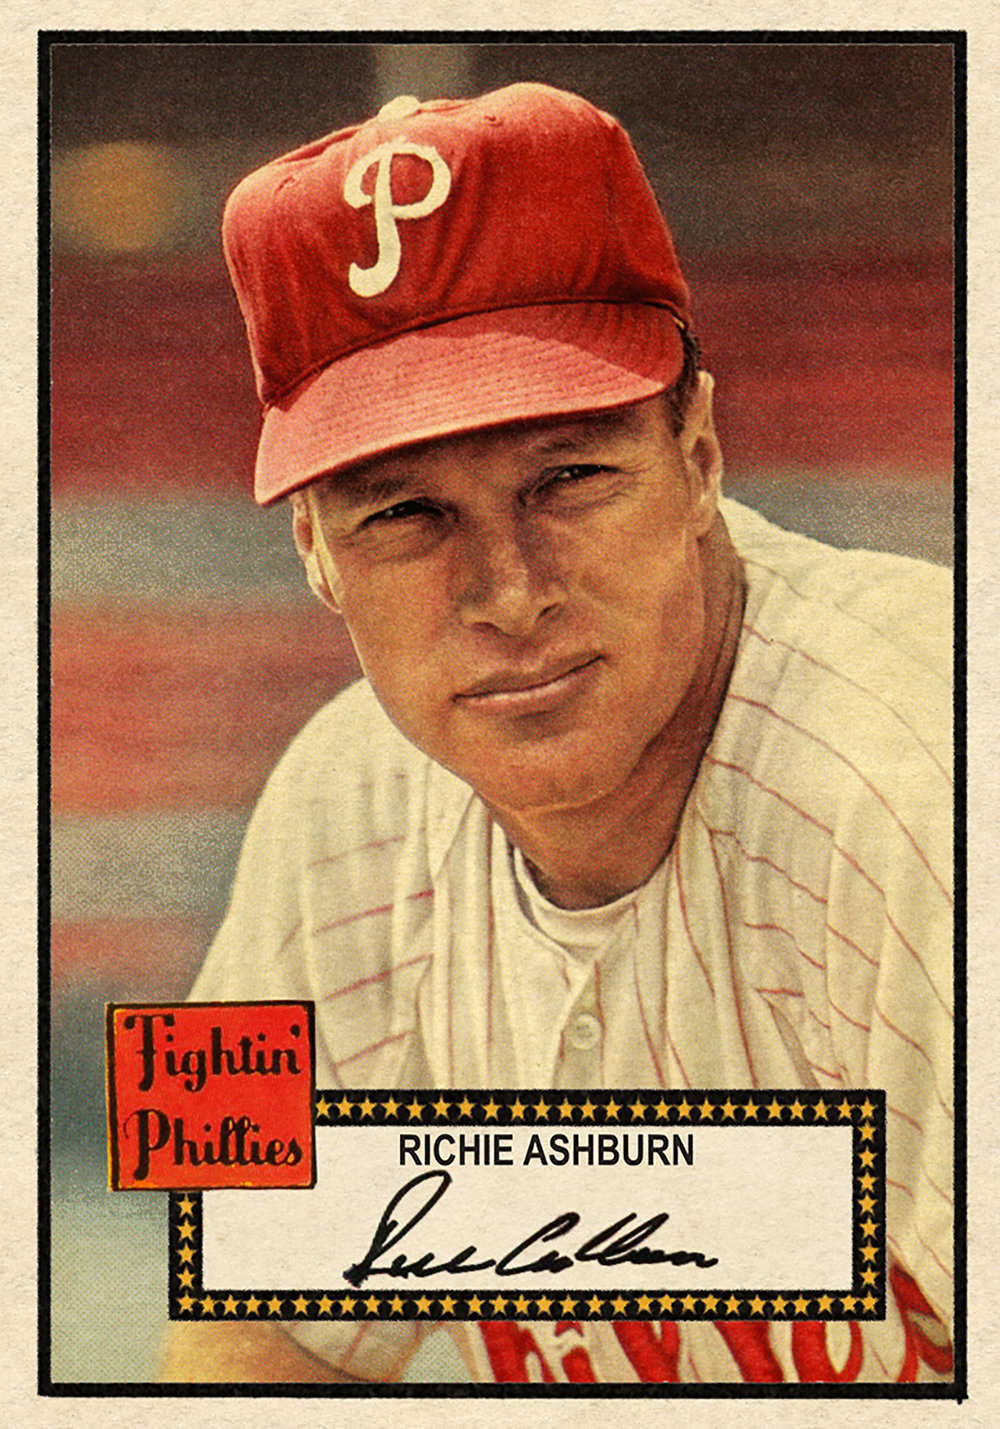 1952 Series #241 RICH ASHBURN - Stunning portrait of the Phillies centerfielder. Beautifully hand-colored.SOLD FOR 142.50 USD, December 2107